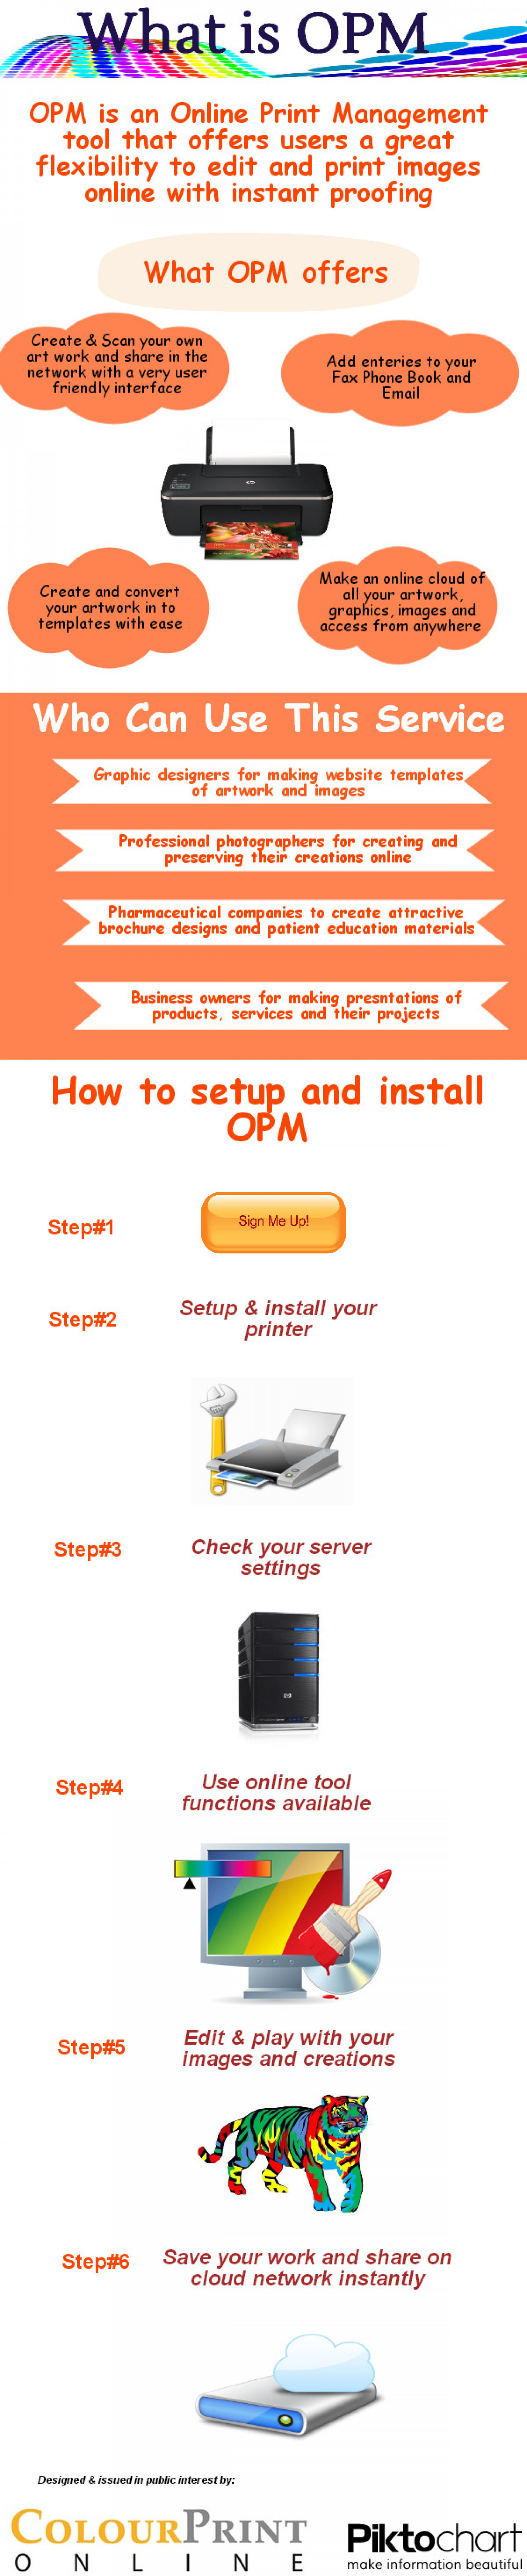 What is OPM? Infographic